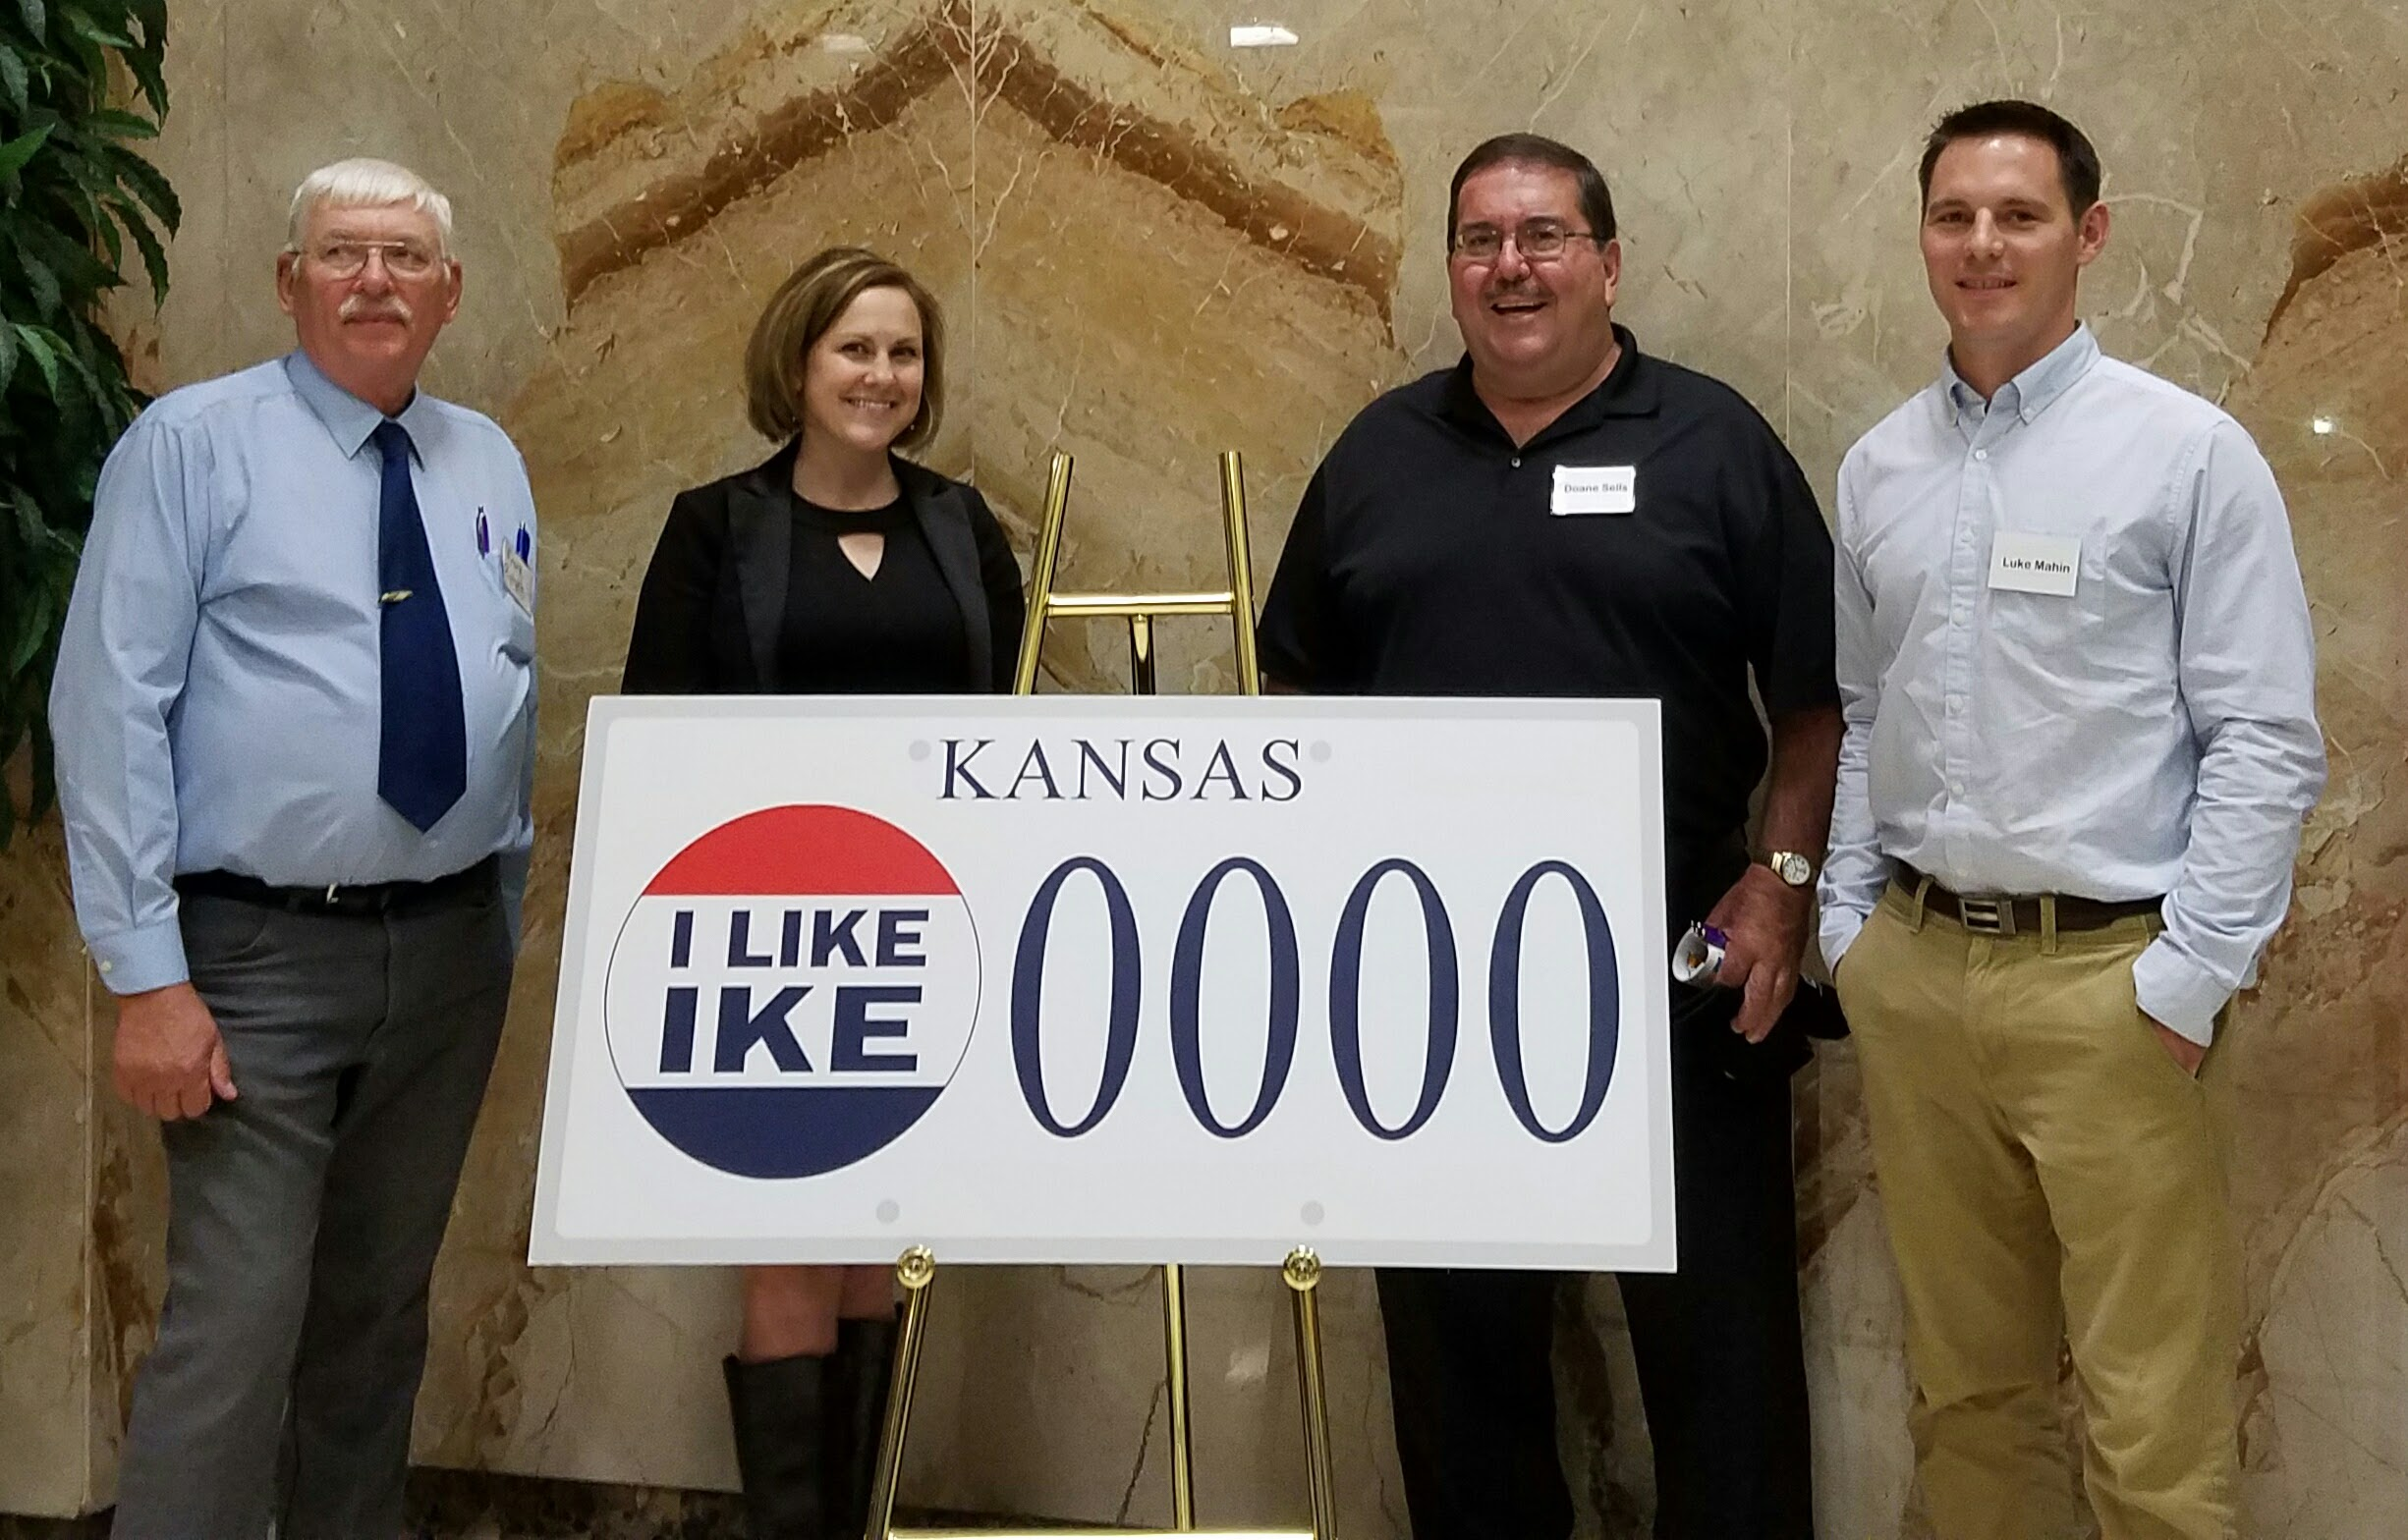 Kansas republic county agenda - From North Central Regional Planning S Monthly Newsletter Http Www Ncrpc Org Wp Content Uploads 2016 11 1611 Pdf Ncrpc Nckcn Hosted Bi Annual Banquet In